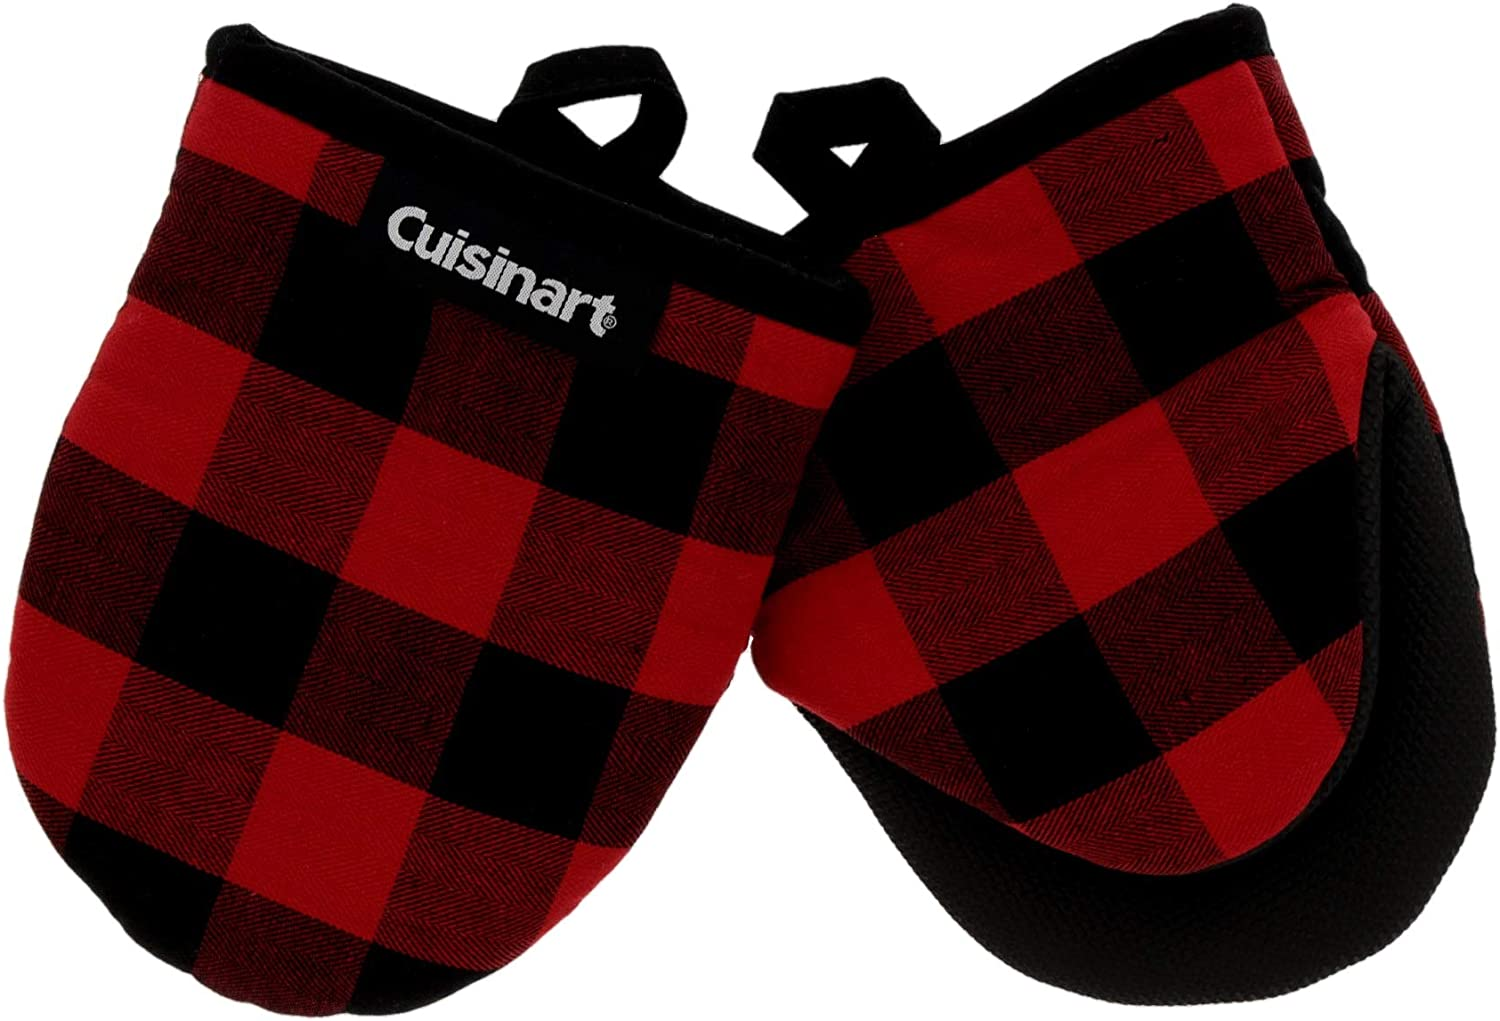 Cuisinart Neoprene Mini Oven Mitts, 2pk - Heat Resistant Oven Gloves Protect Hands and Surfaces with Non-Slip Grip and Hanging Loop-Ideal Set for Handling Hot Cookware - Buffalo Check, Red, black